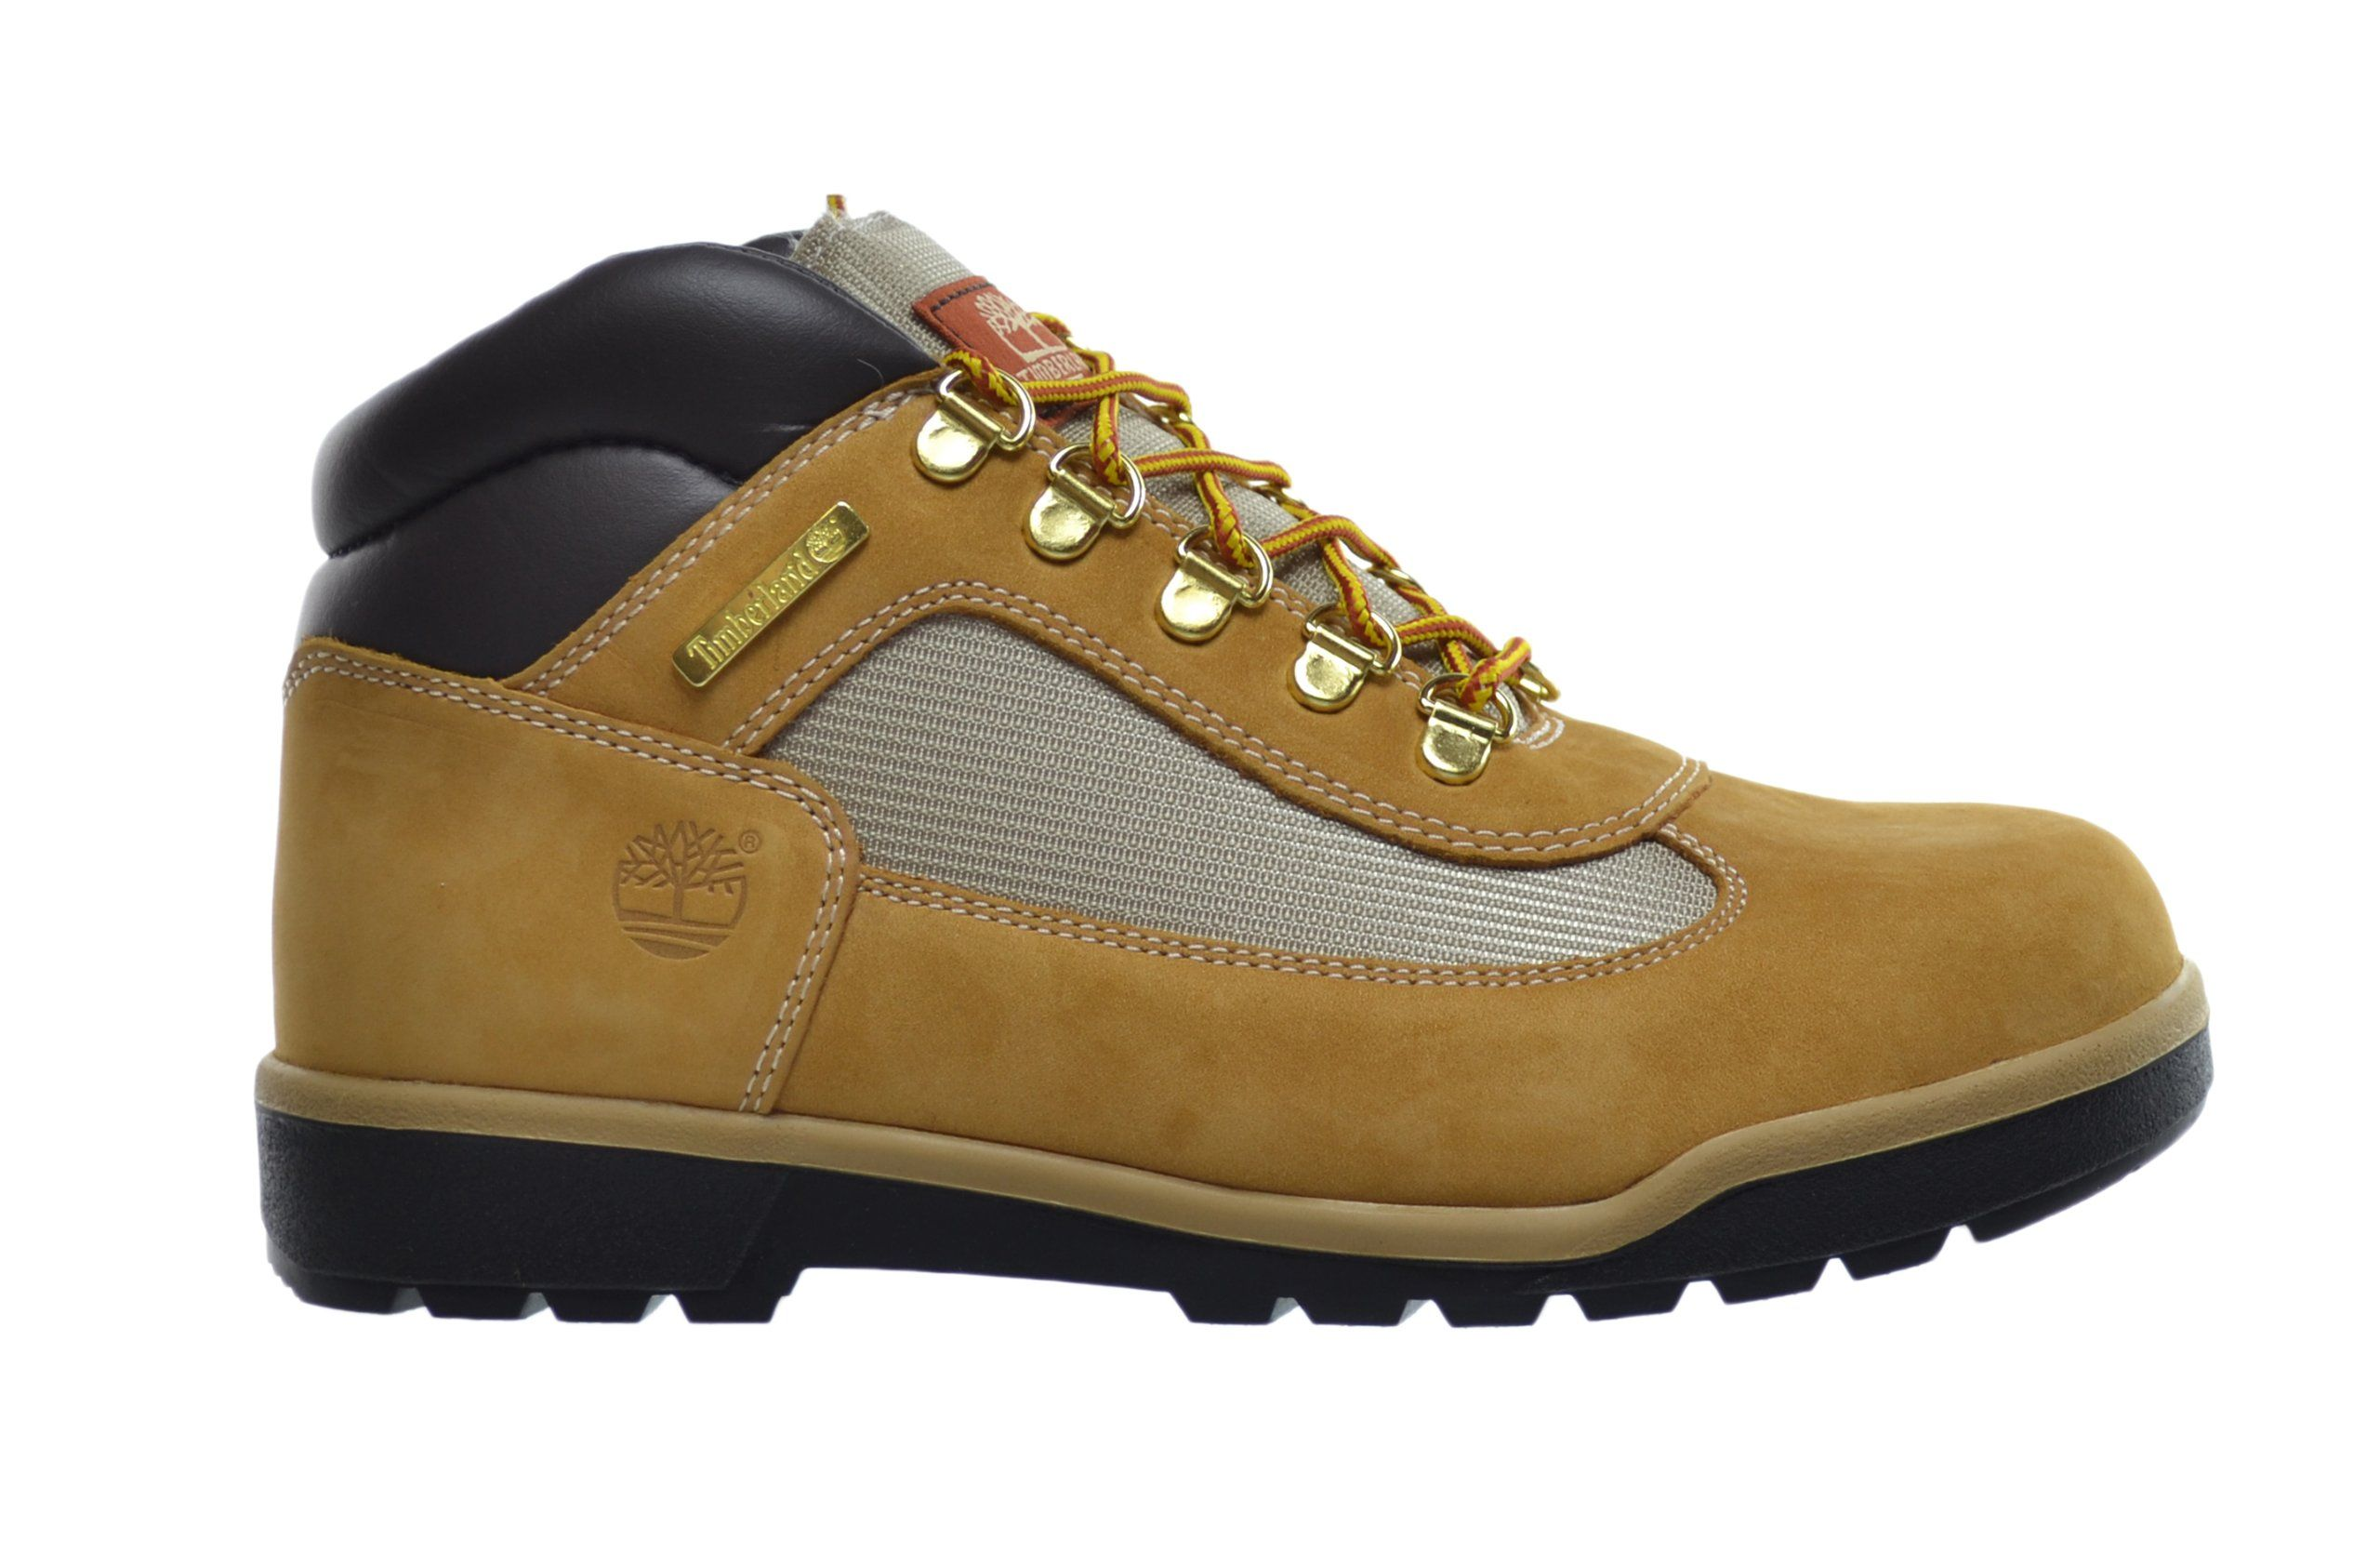 5df47f0c9336 Timberland Big Kids Leather And Fabric Field Boots Wheat 15945 7 M US     Read more at the image link. (This is an affiliate link)   TimberlandShoesforMen